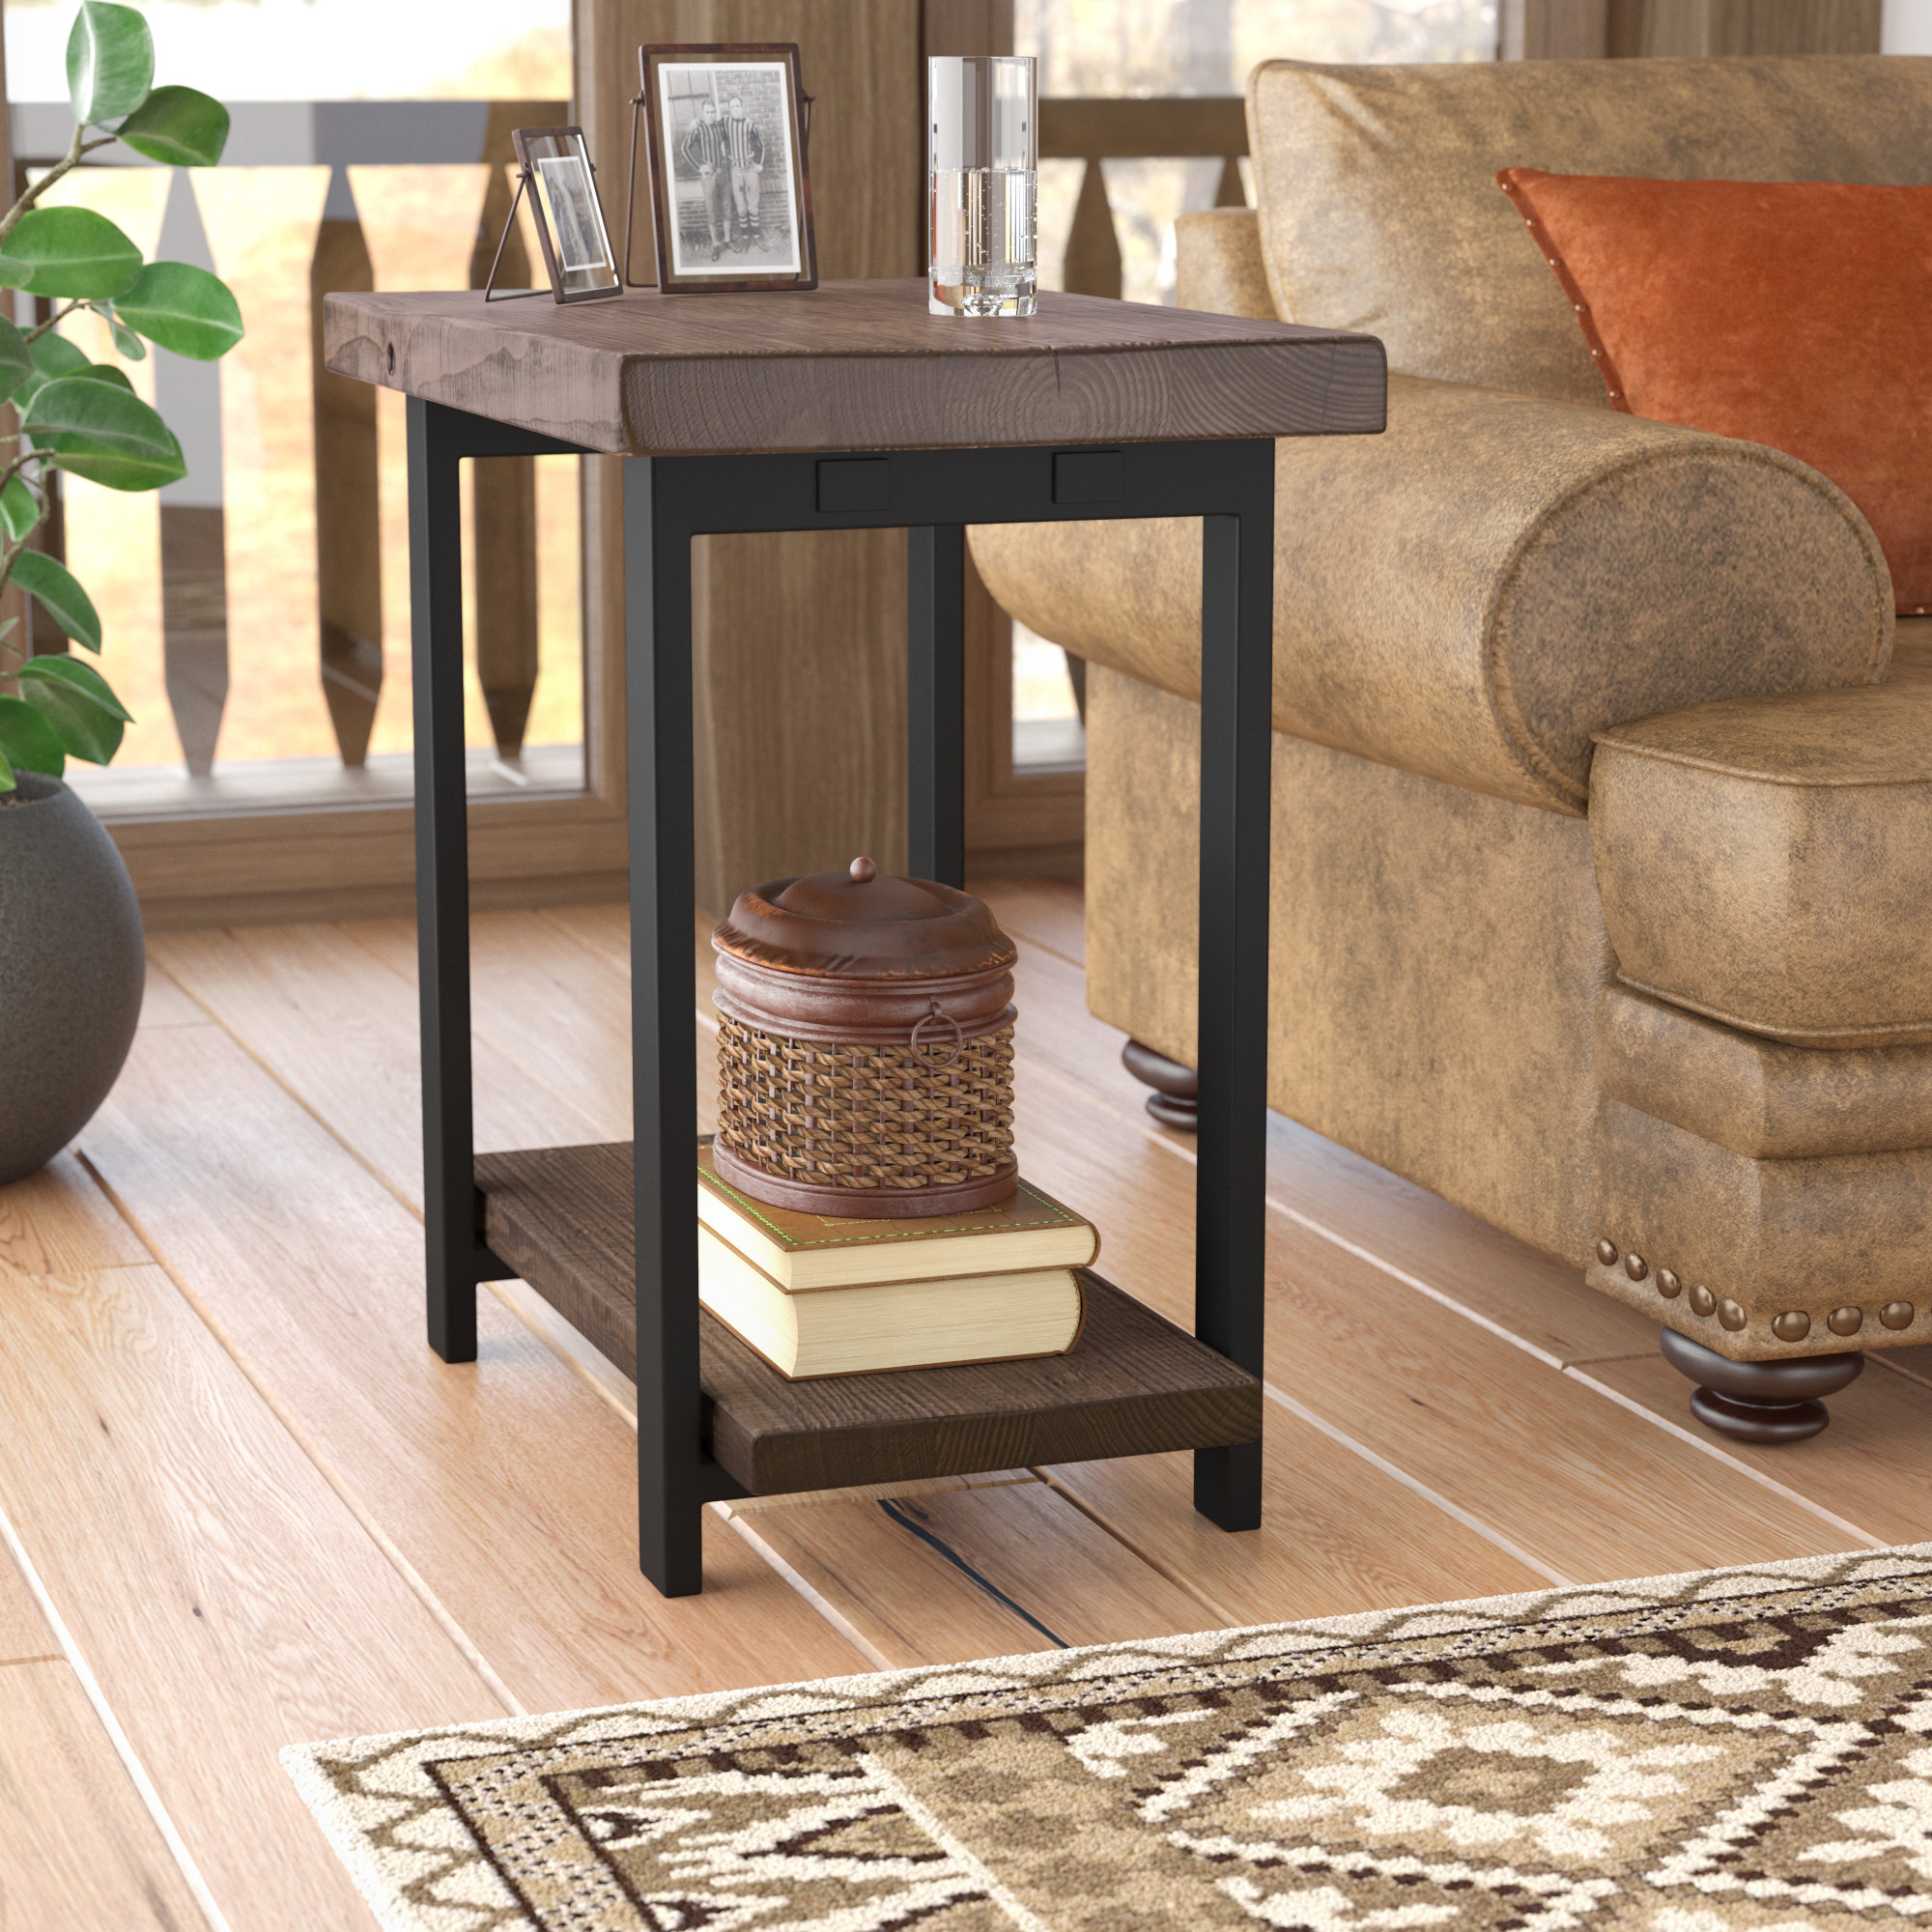 mistana veropeso end table reviews hawthorne glass top accent bronze high bistro nest furniture brown marble bar cordless floor lamp rechargeable small mirrored nightstand tiffany